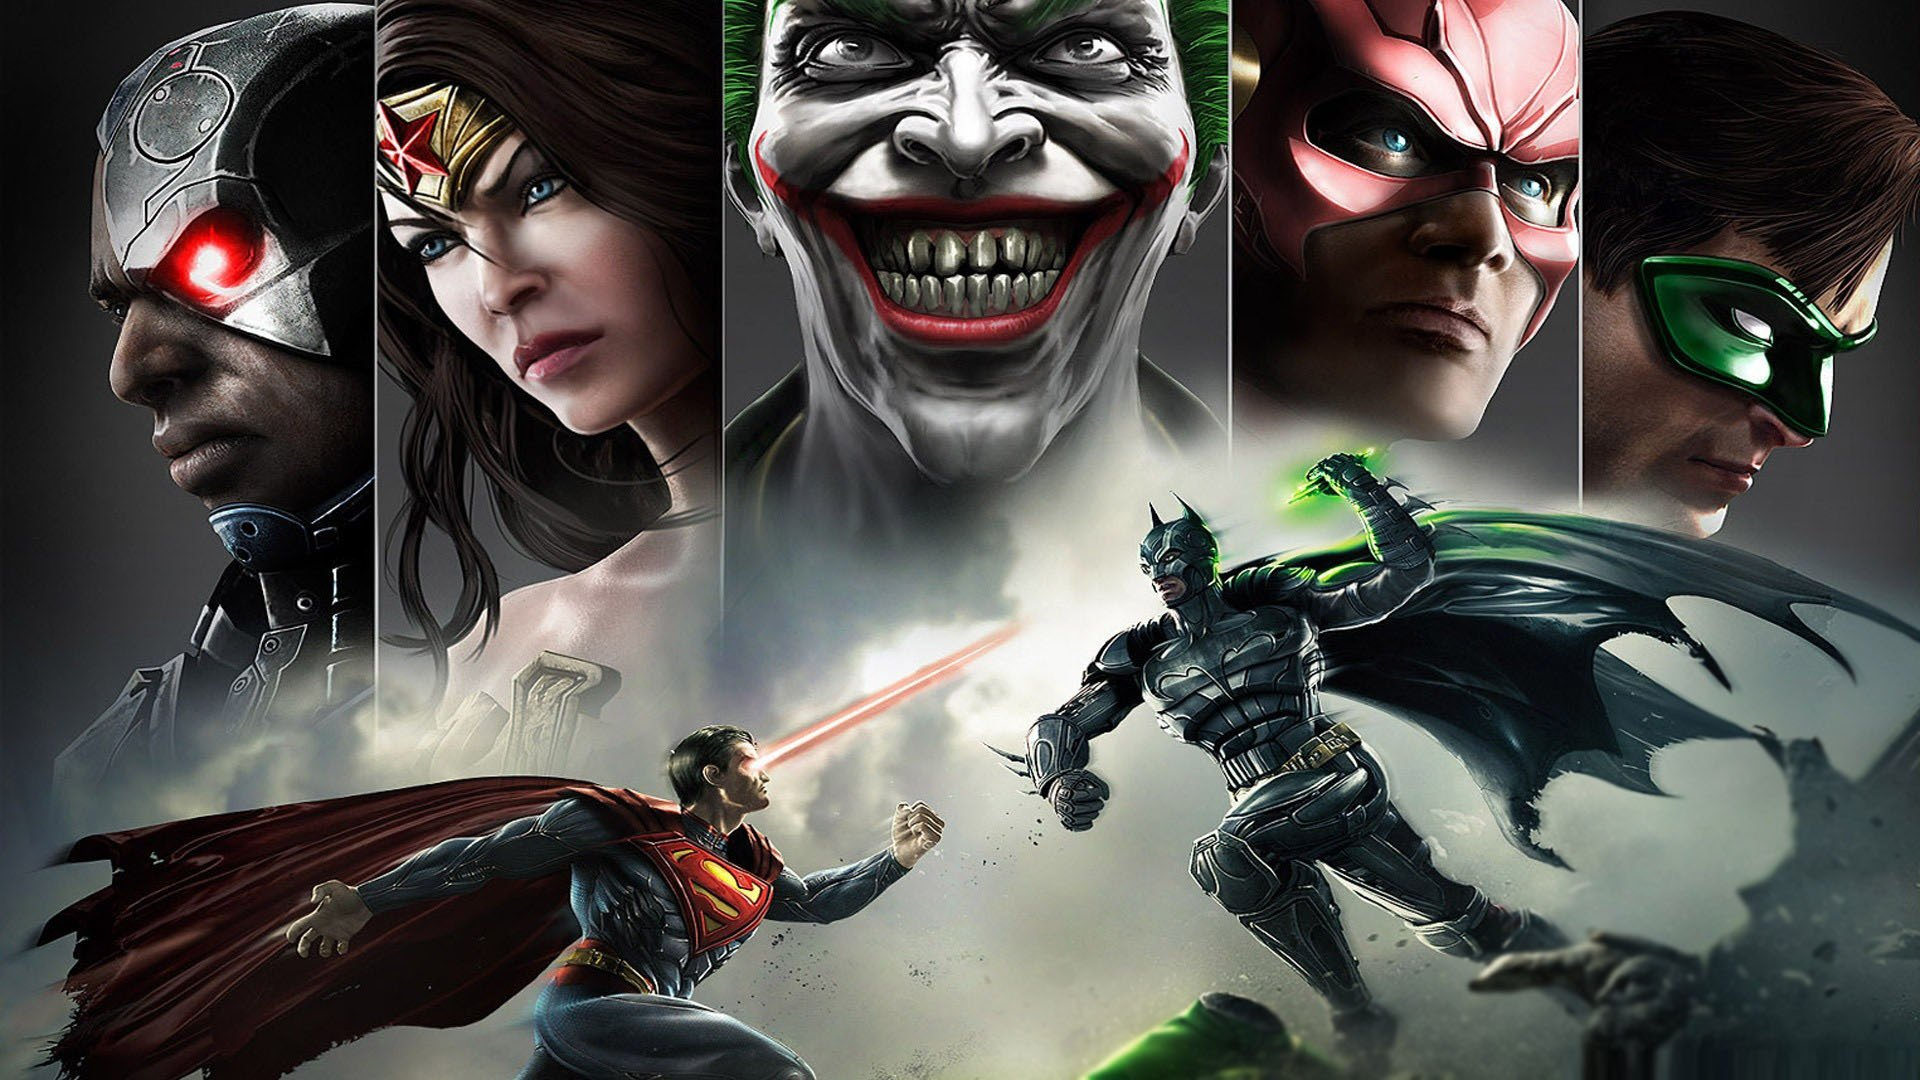 injustice-gods-among-us-ultimate-edition-wallpaper-8